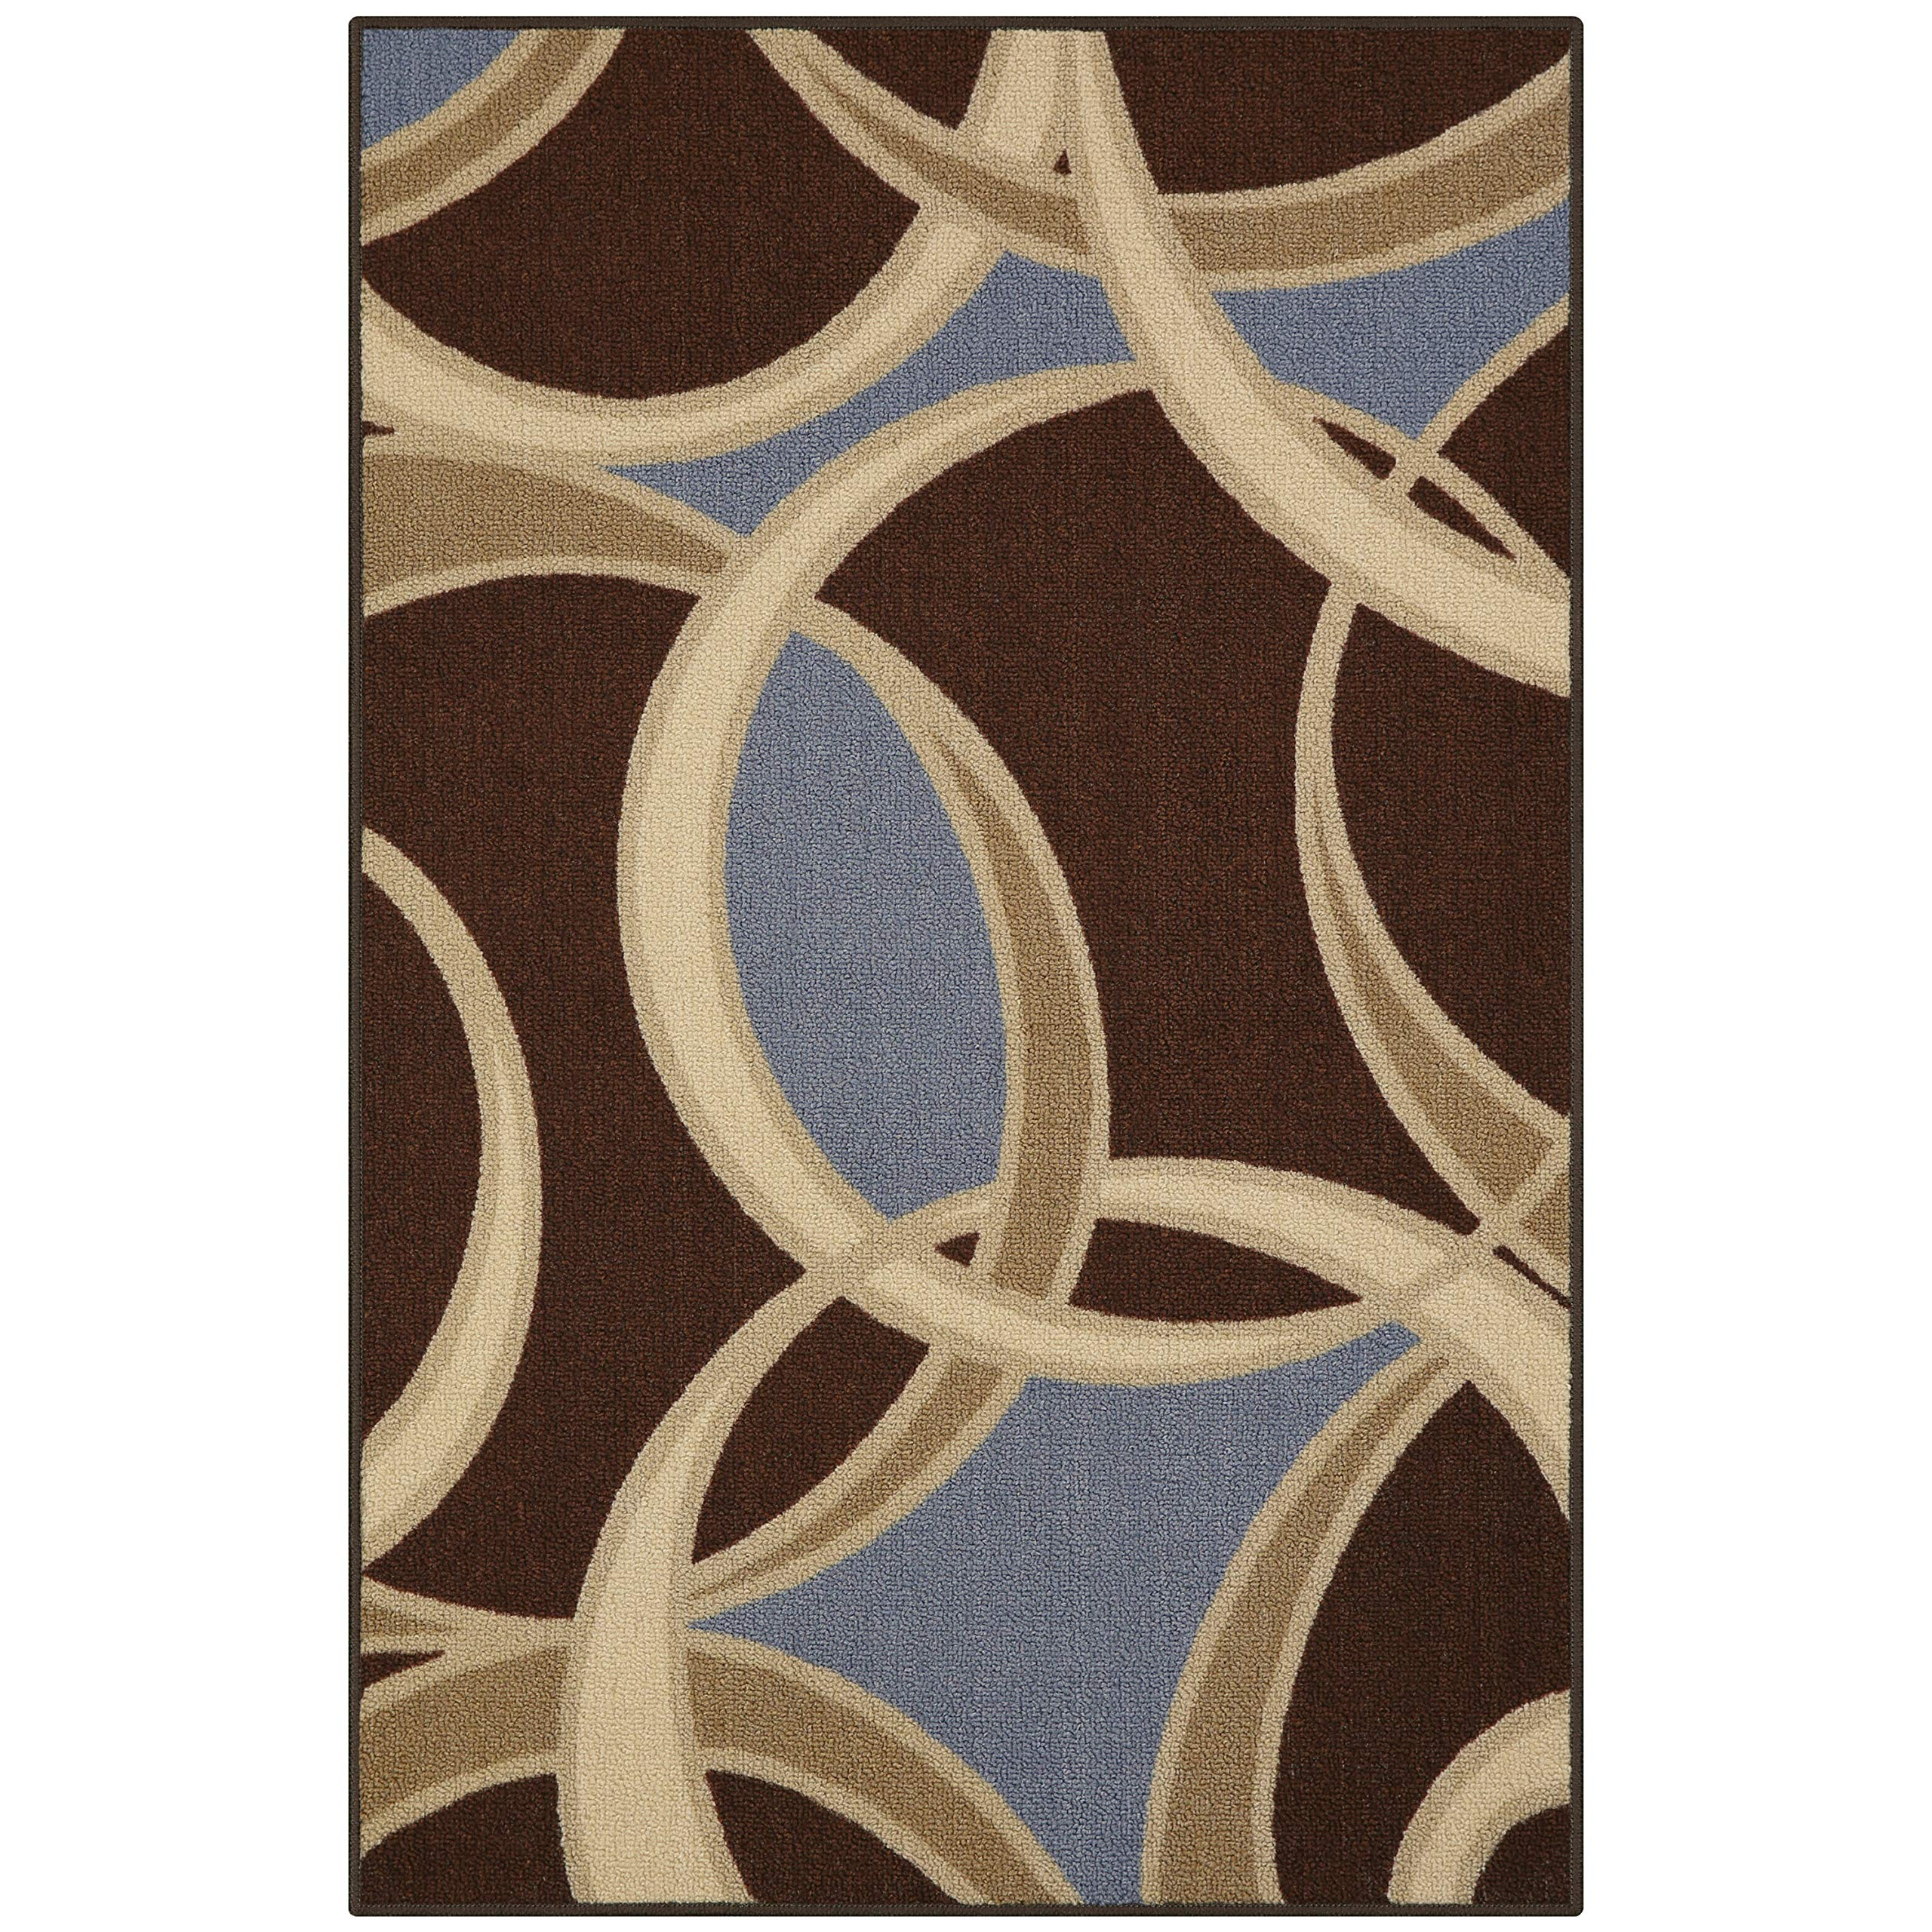 Maples Rugs 2'6 x 3'10 Non Skid Hallway Entry Rugs Kitchens [Made in USA] for Kitchen and Entryway, Coffee Brown/Blue